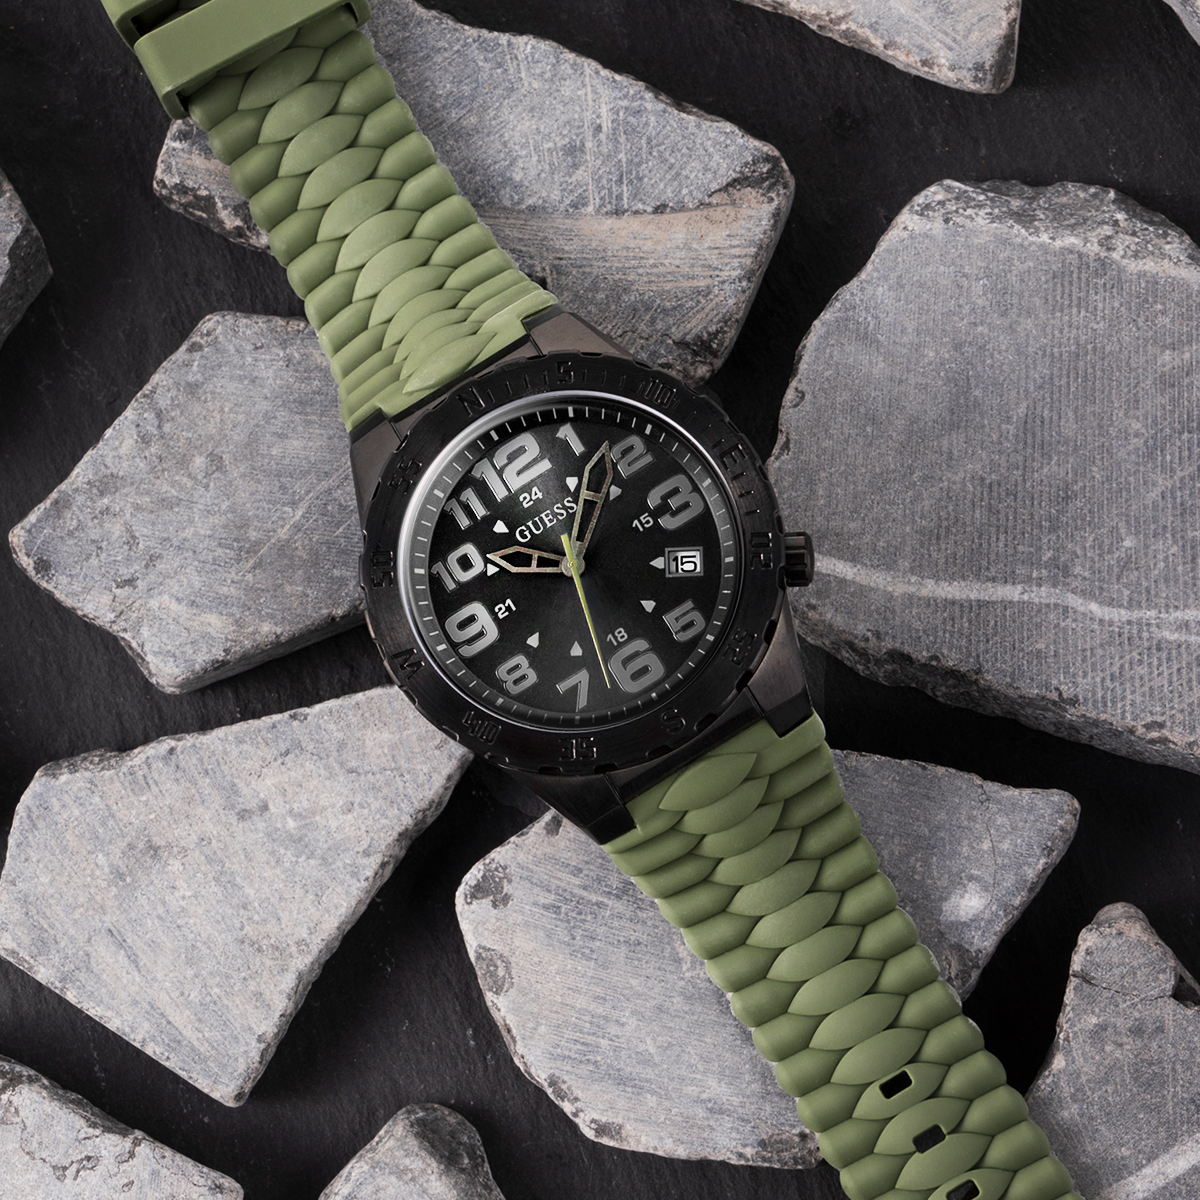 GUESS Watches Urban Camper